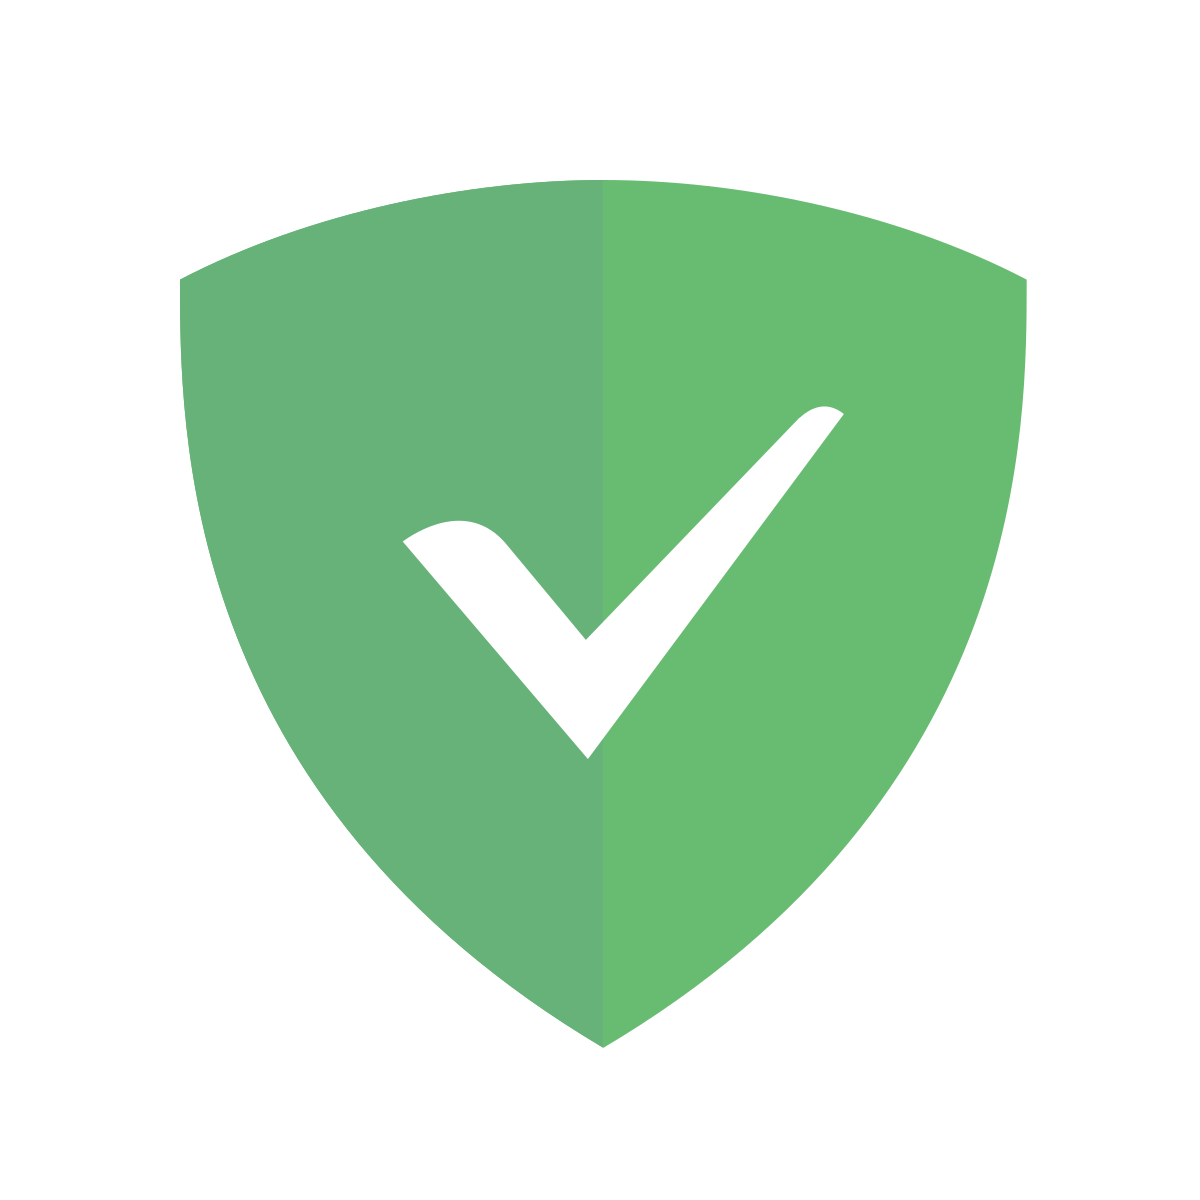 AdGuard – Best Network Security from Ad Tracking and blocker in 2020?